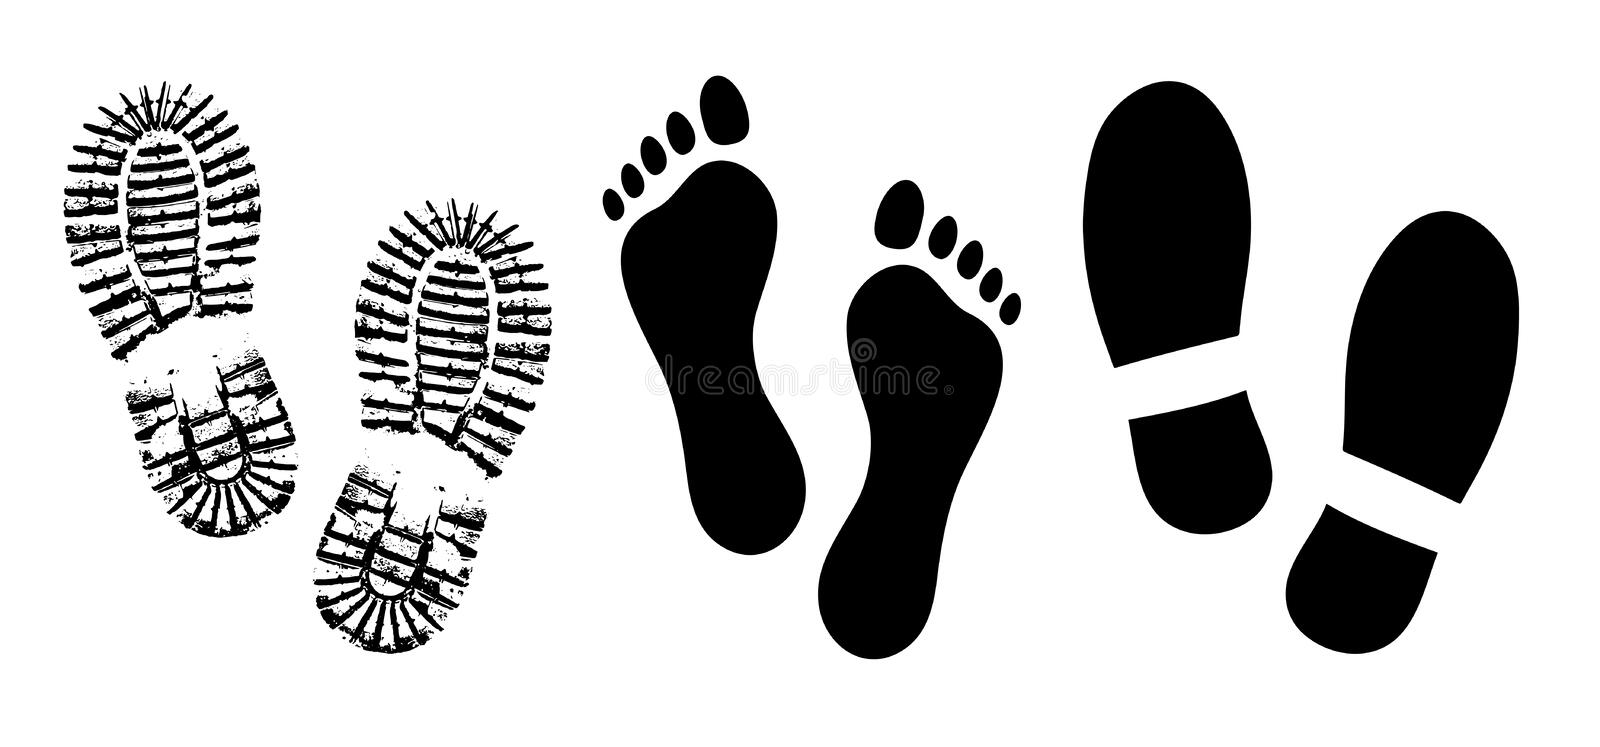 Shoe sole, footprints human shoes silhouette vector, foot barefoot feet. vector illustration